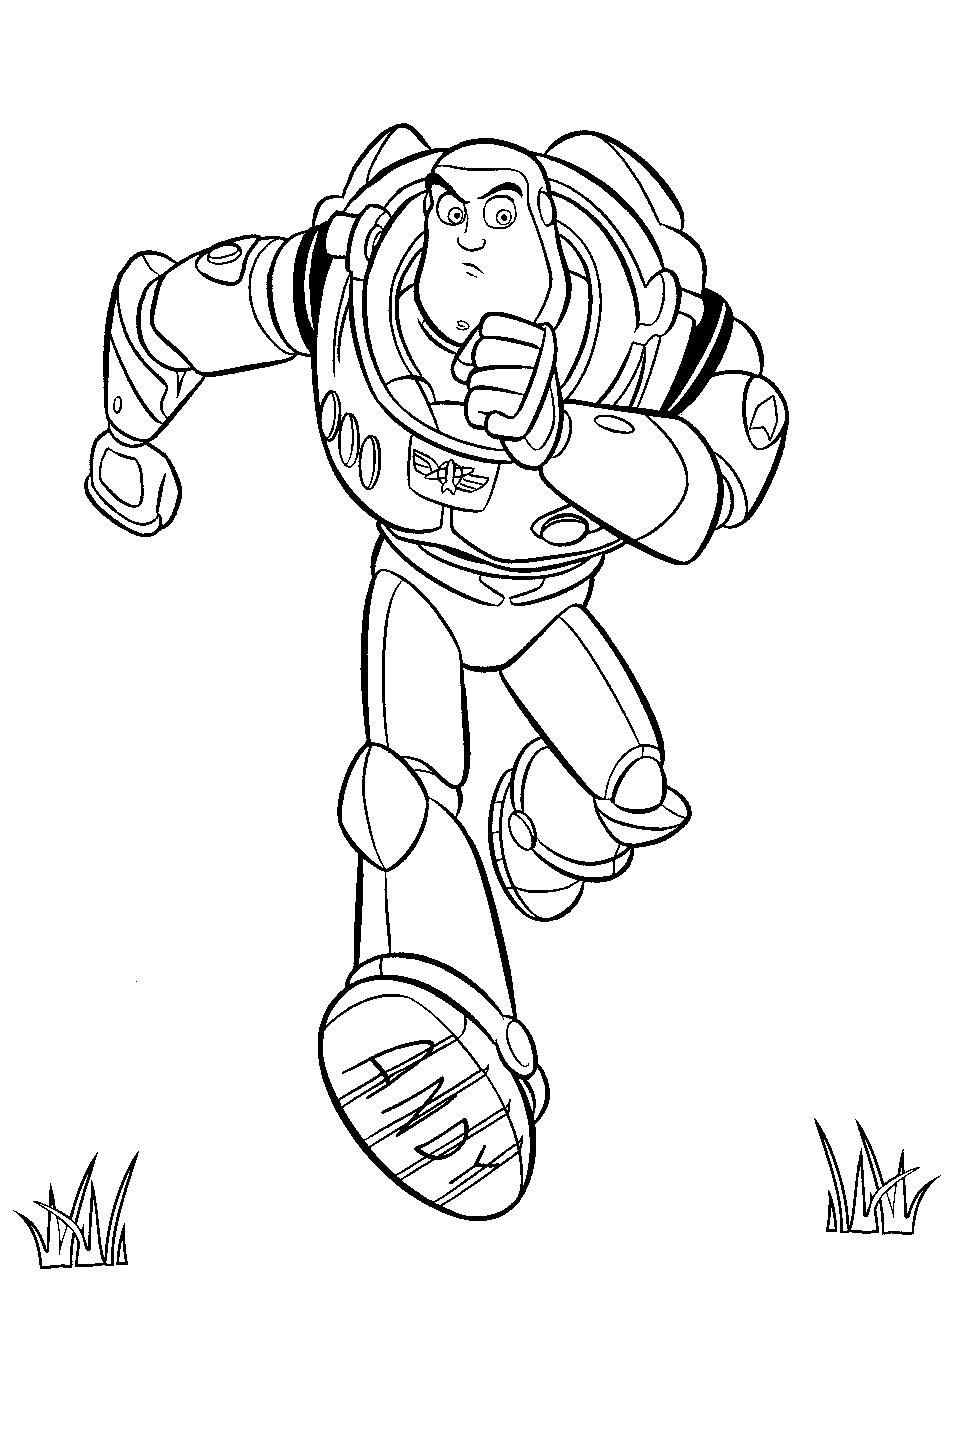 Toy story rex coloring pages